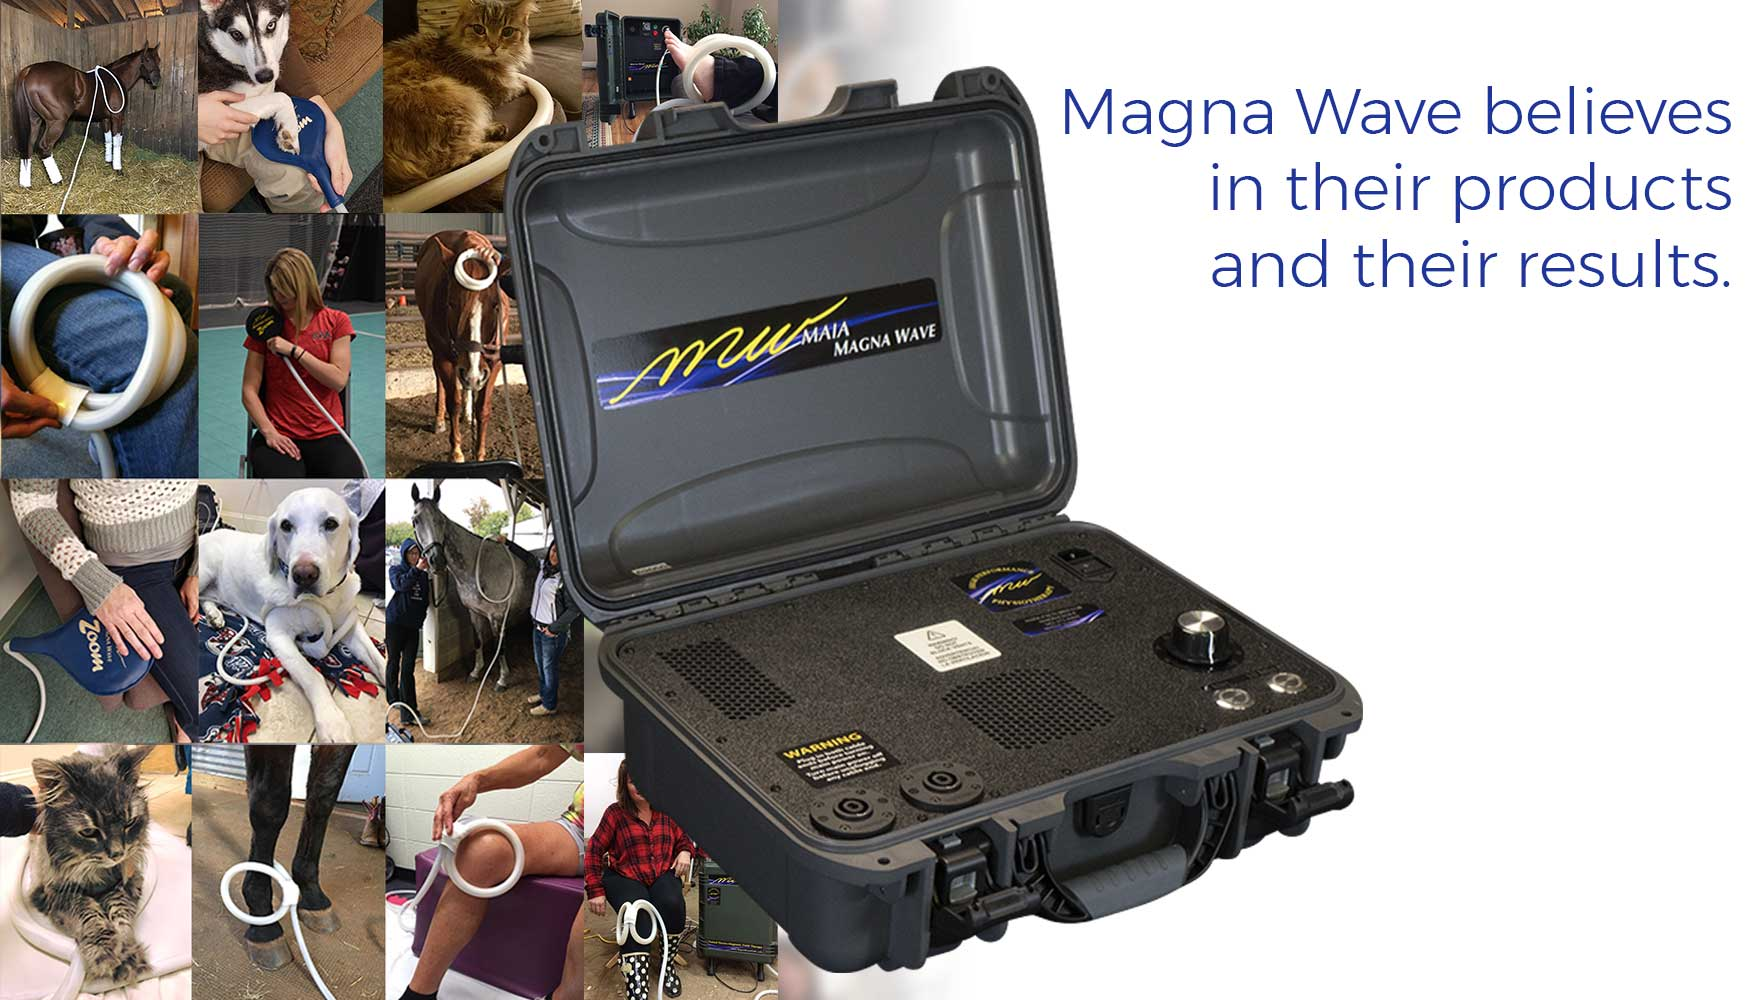 Magna Wave has been in the pulsed electro magnetic therapy business for over 10 years and believes in their products and their results.